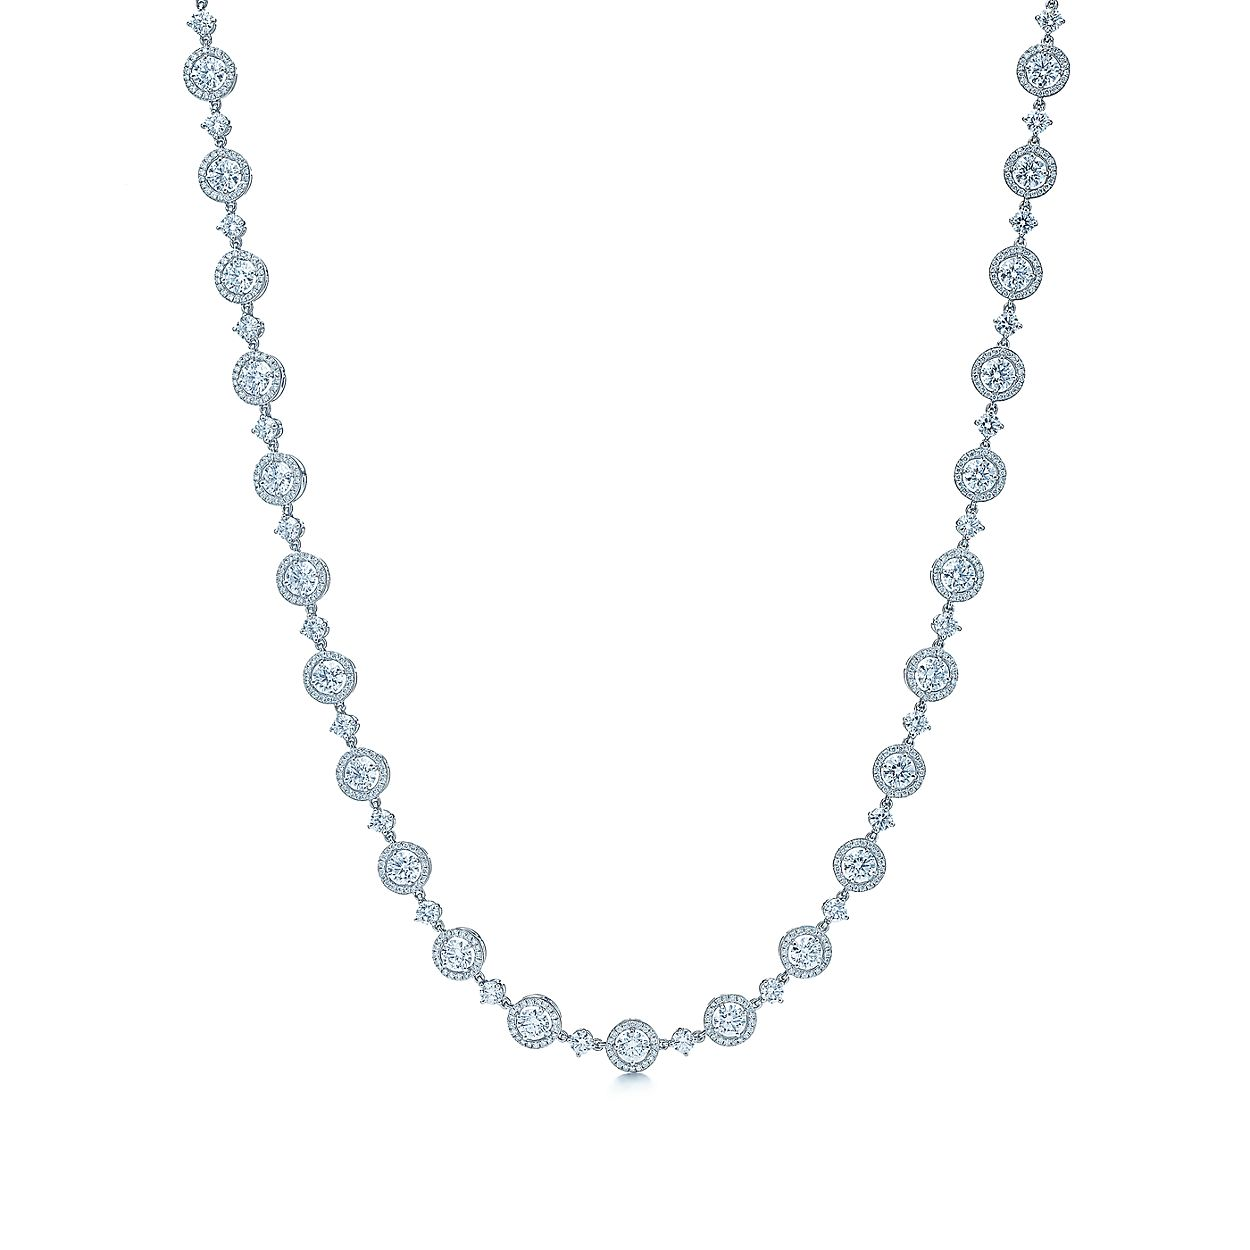 gw necklace carat necklaces baunat design in diamond ps en platinum